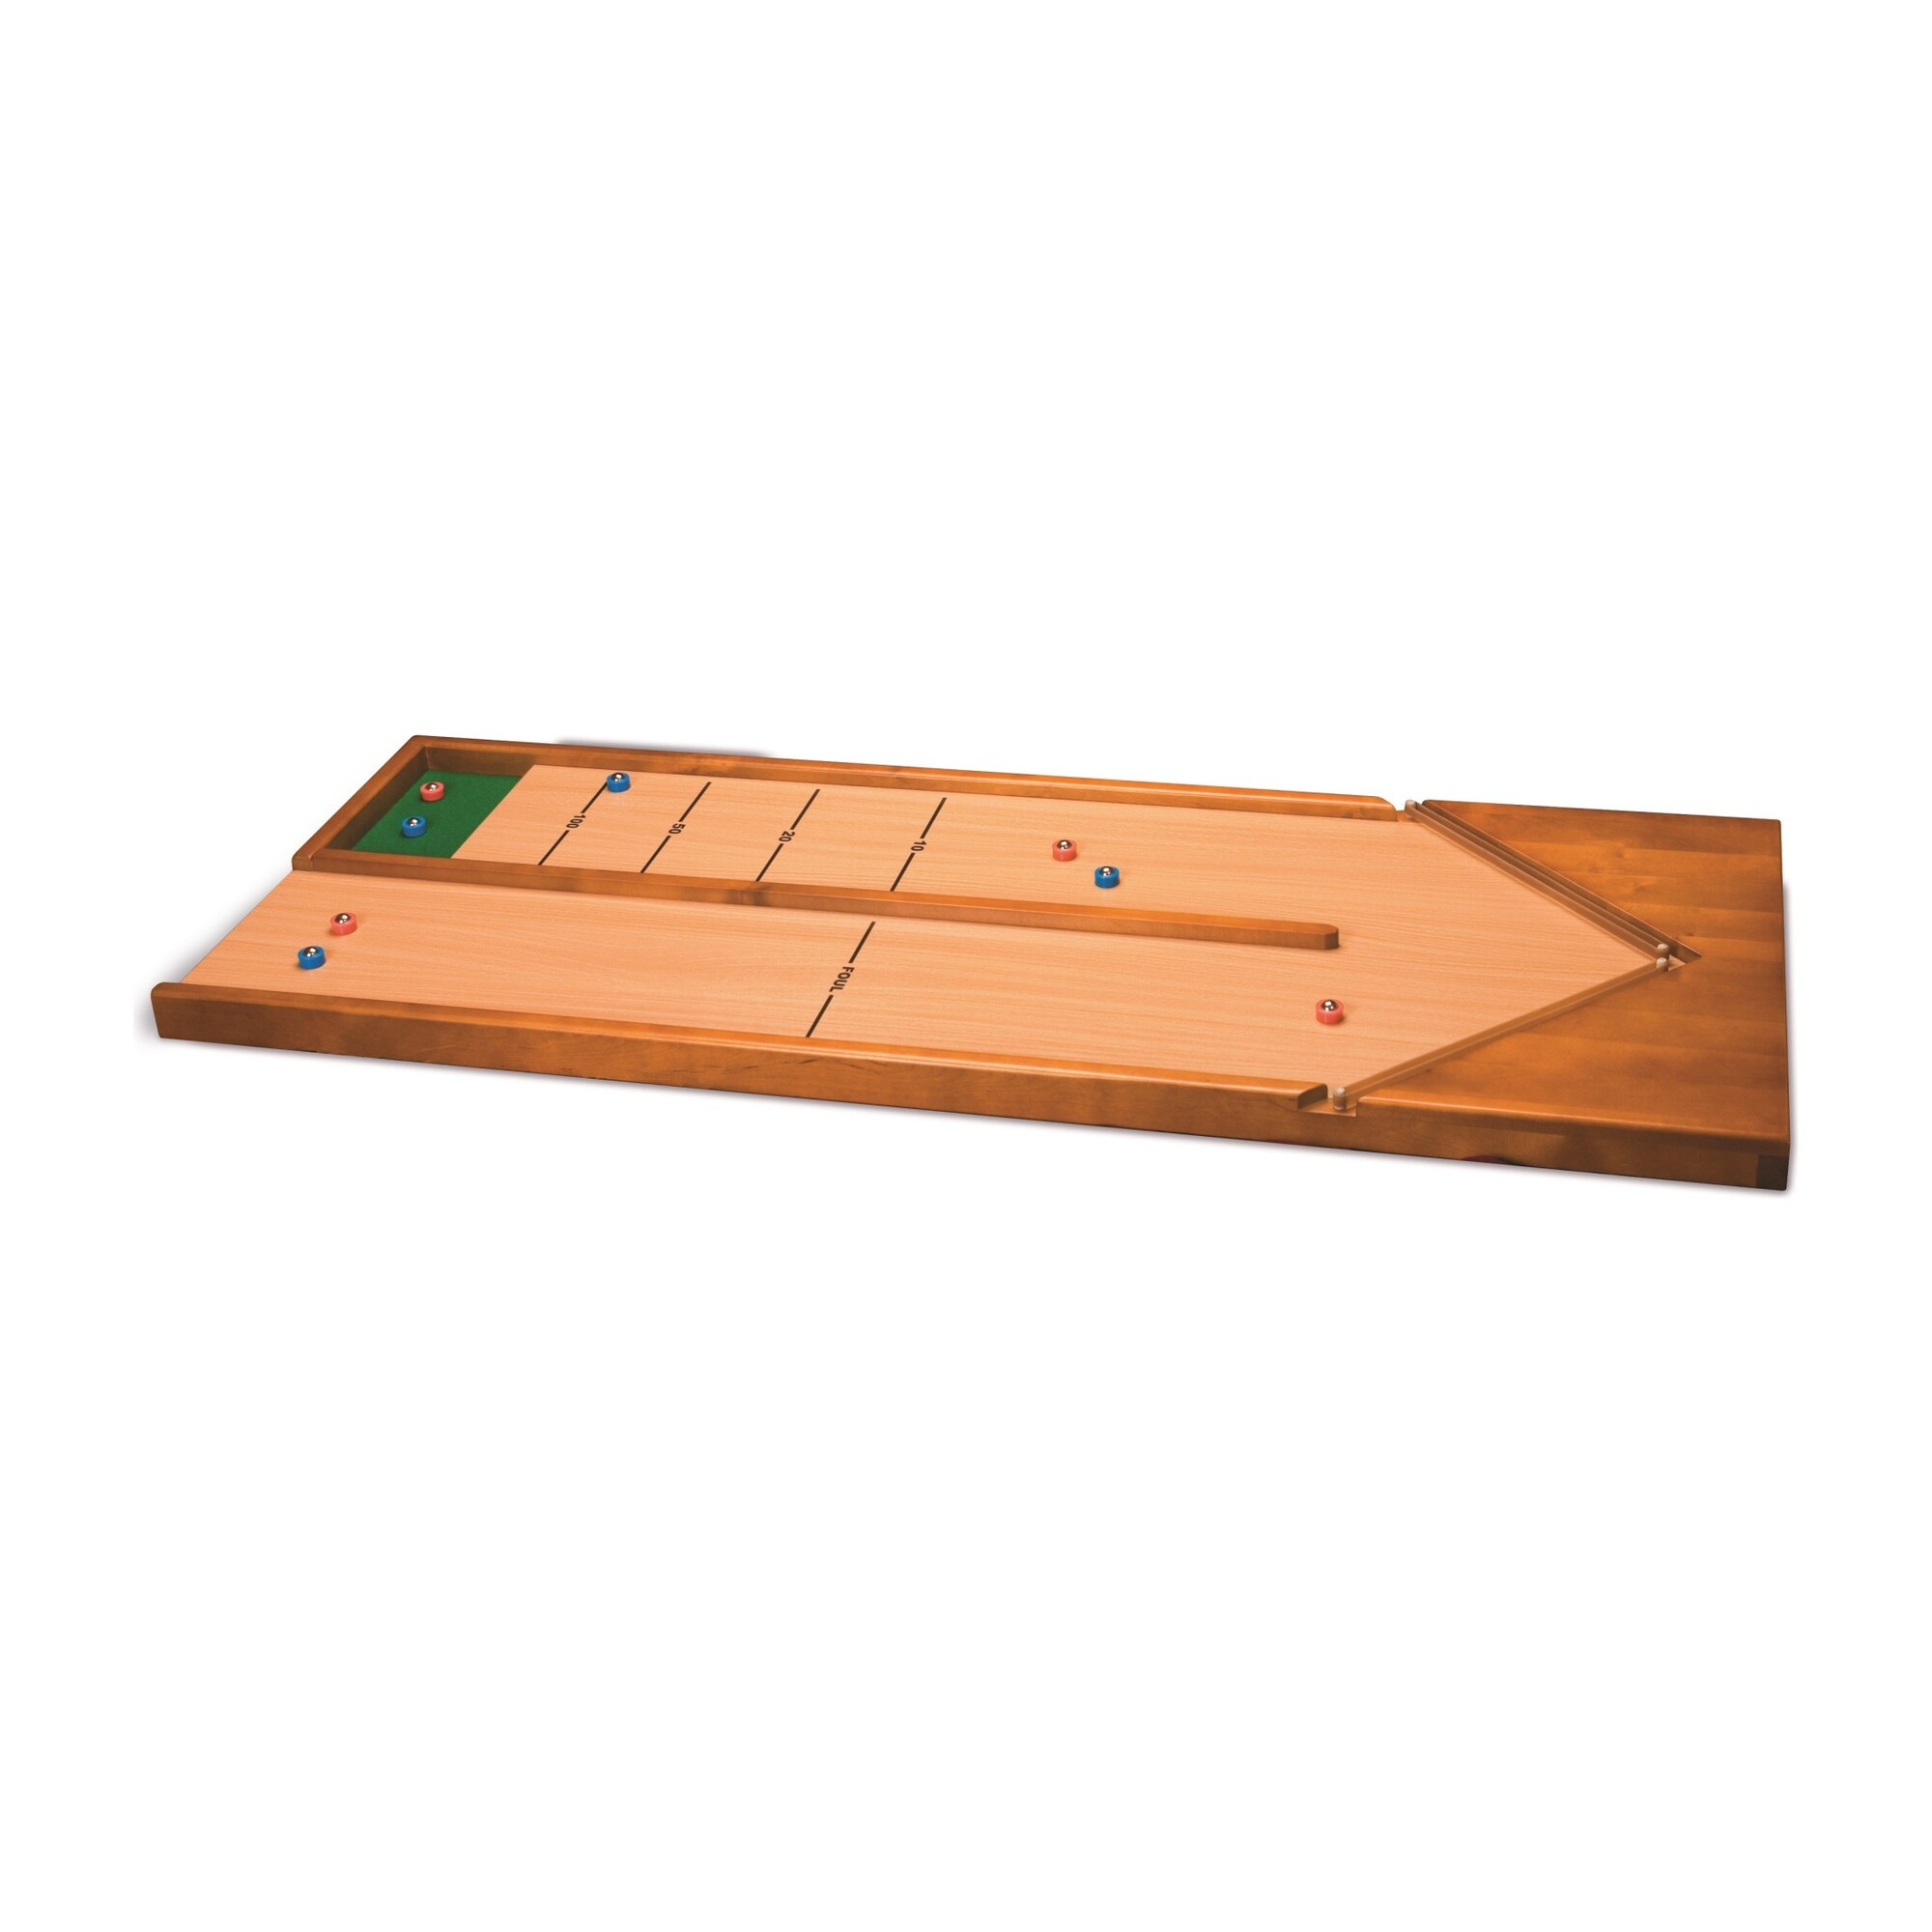 Table Top Shuffleboard